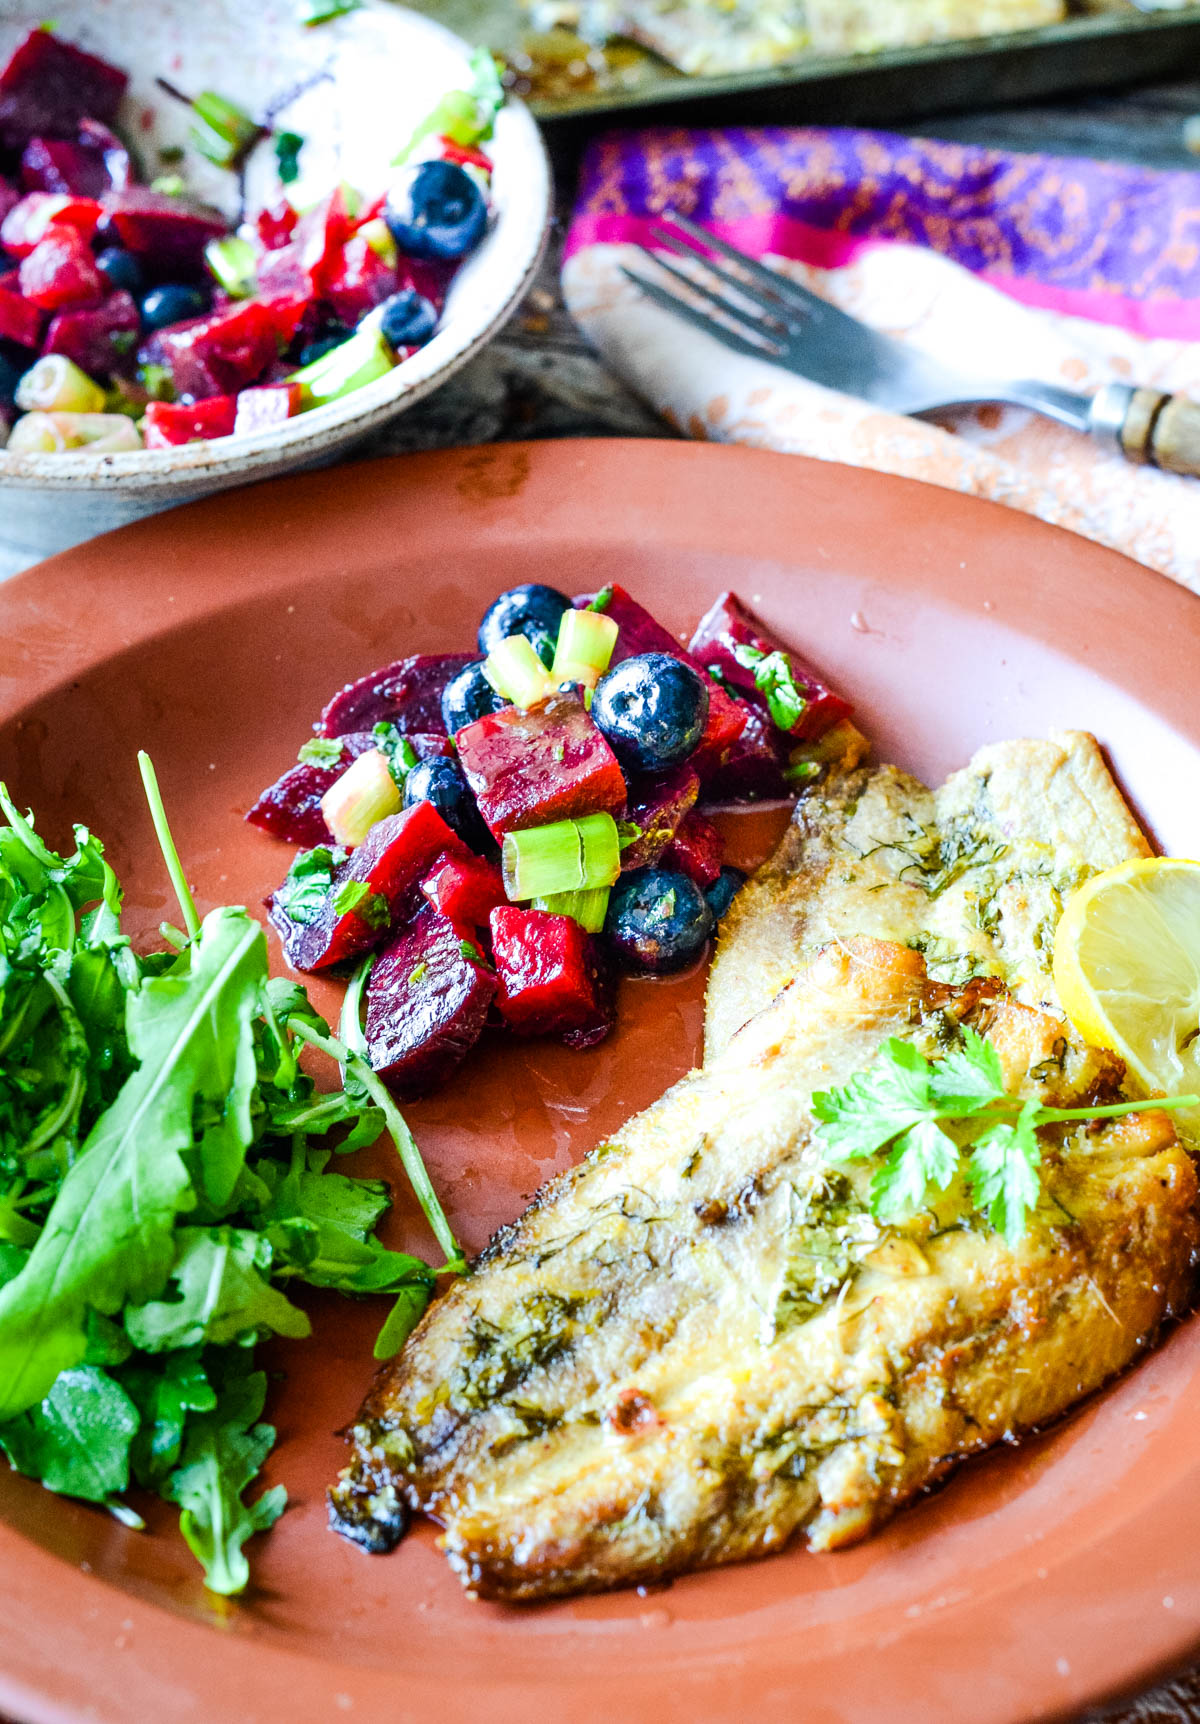 baked sardines with blueberry and beetroot salsa on plate